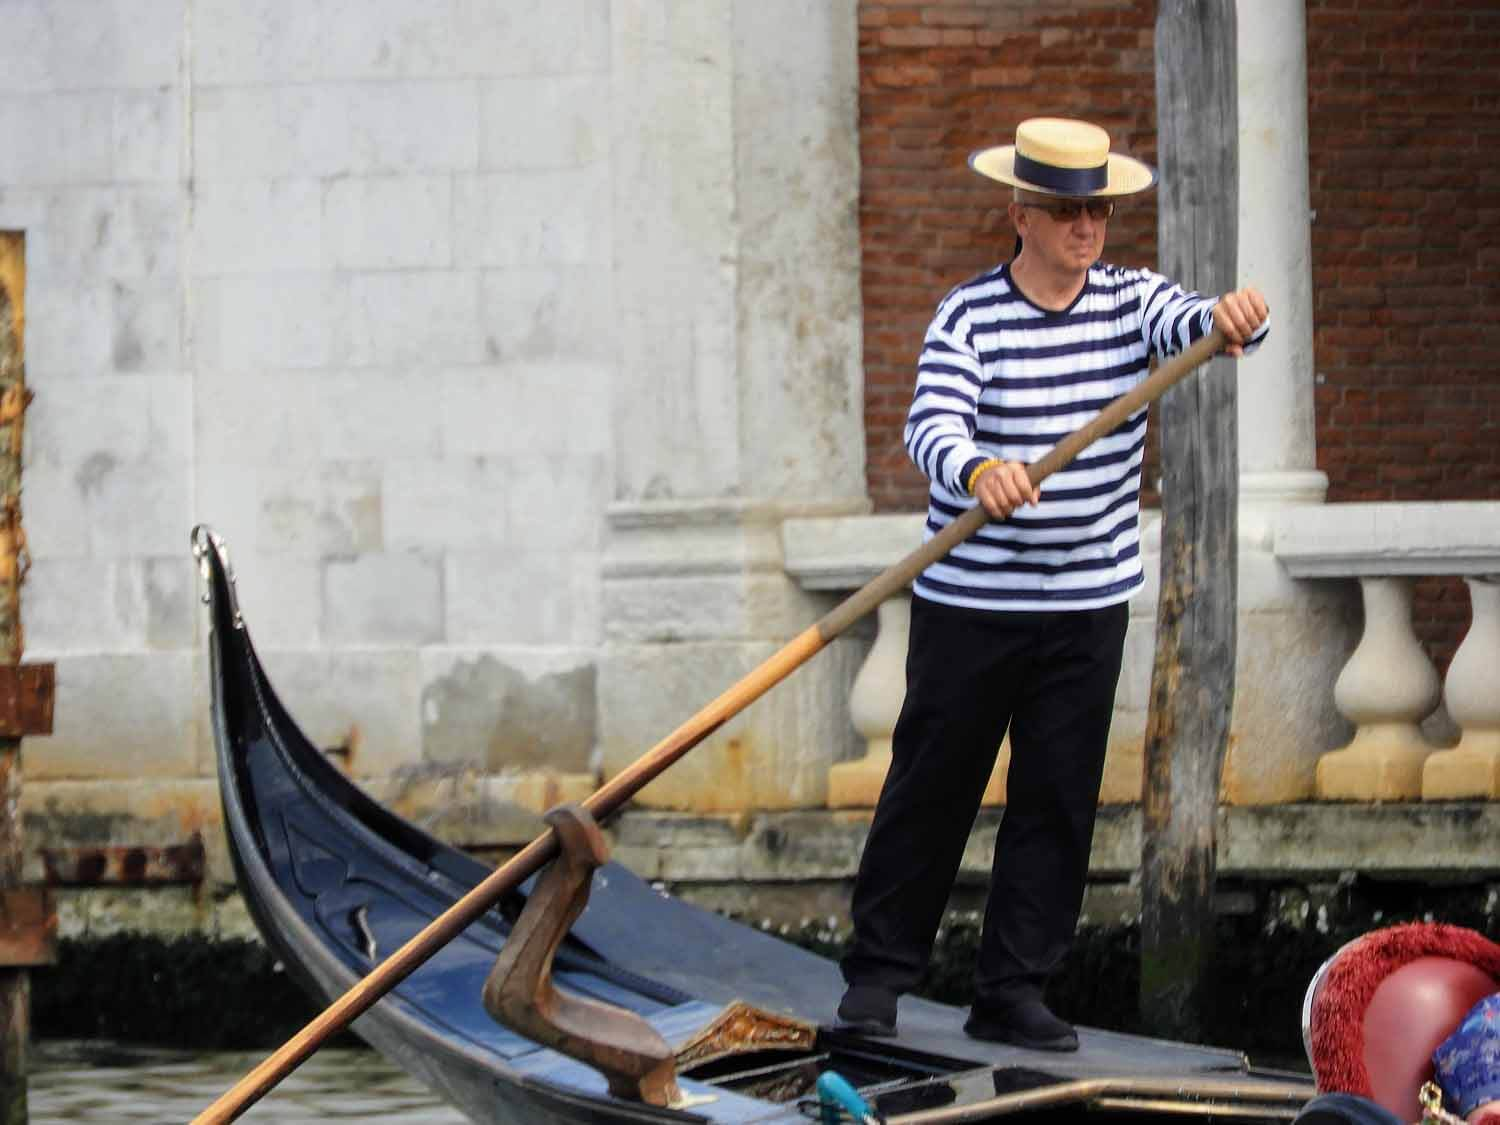 italy-italia-venice-ganola-row-hat-stripped-hat.jpg